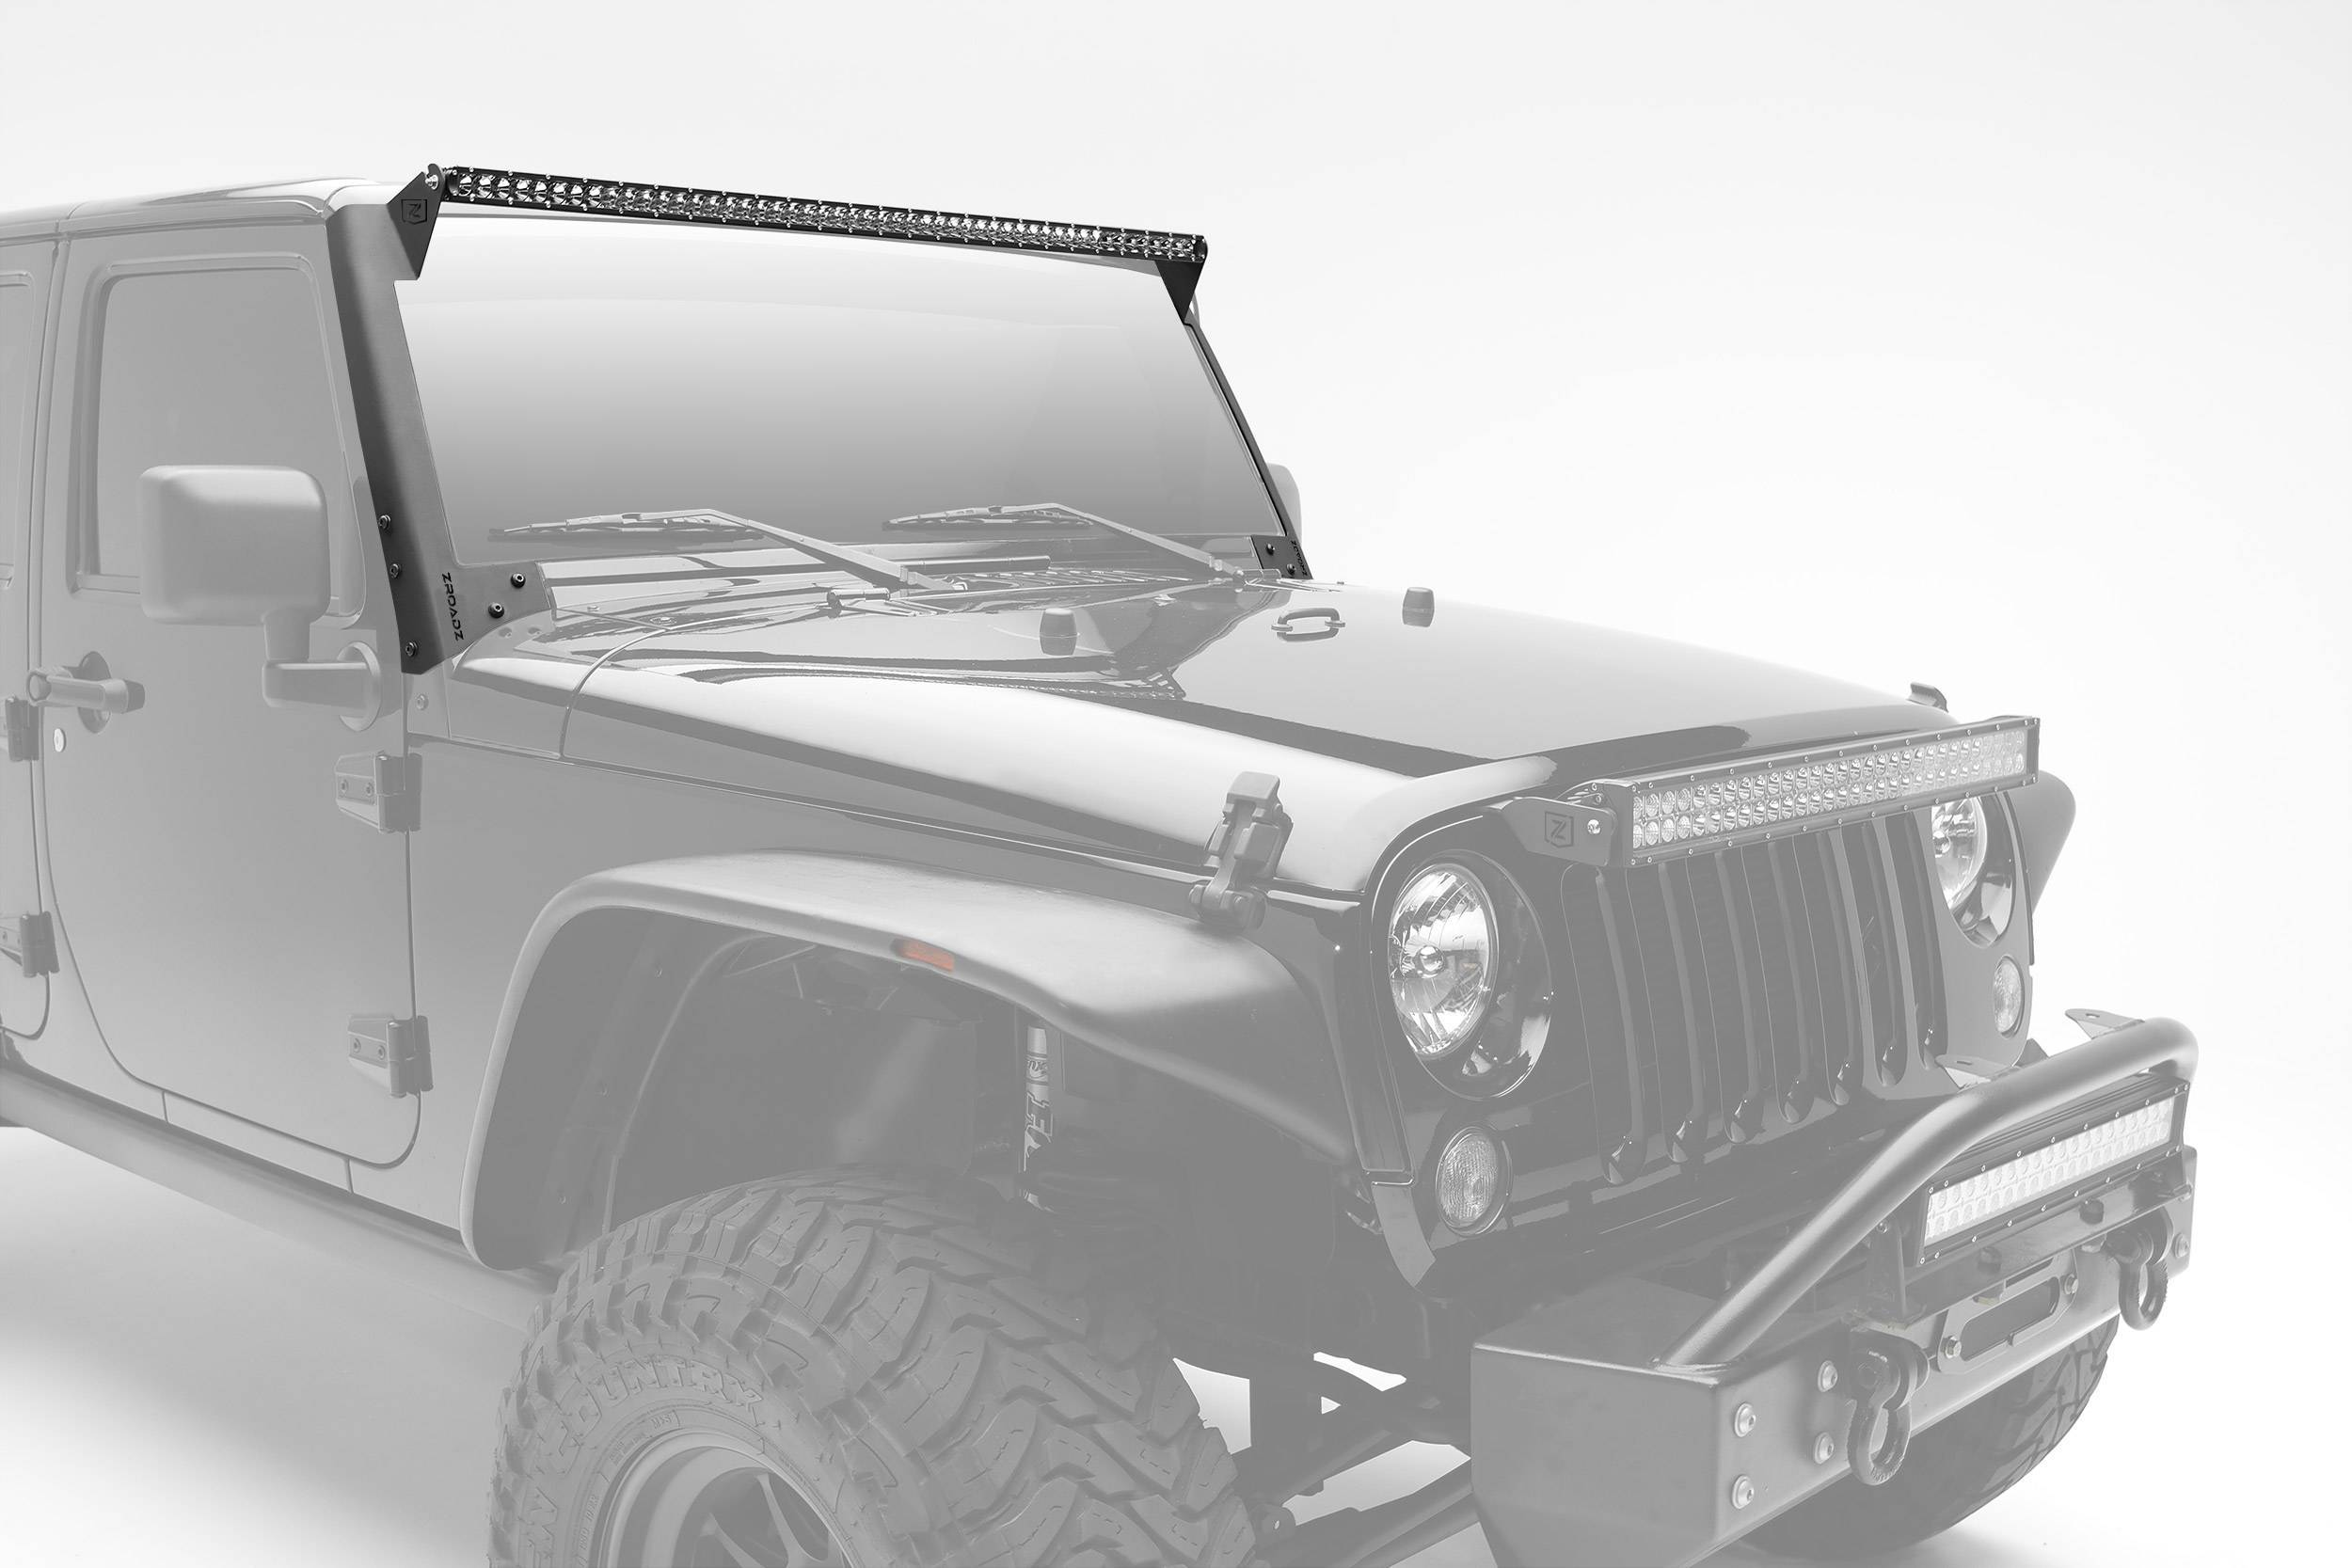 ZROADZ OFF ROAD PRODUCTS - 2007-2017 Jeep JK Front Roof LED Kit with (1) 50 Inch LED Straight Single Row Slim Light Bar - PN #Z374711-KIT